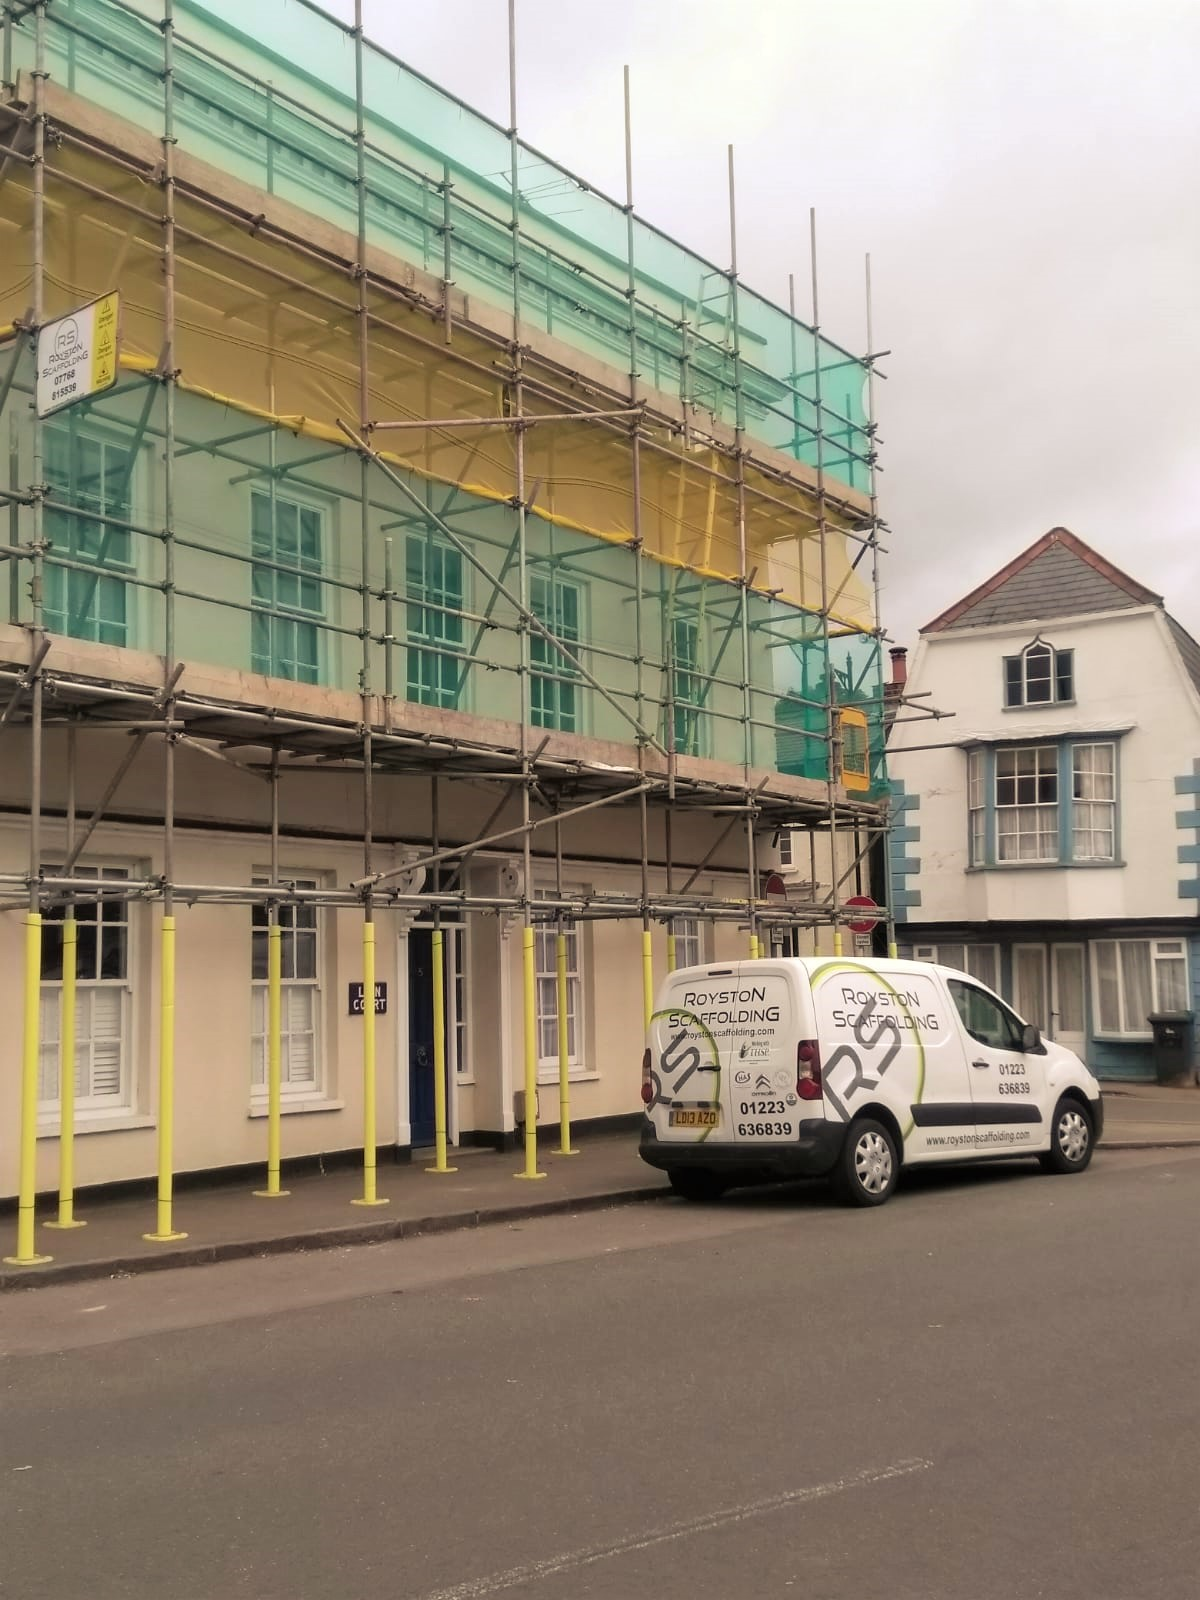 Royston-Scaffolding-projects-26.jpeg